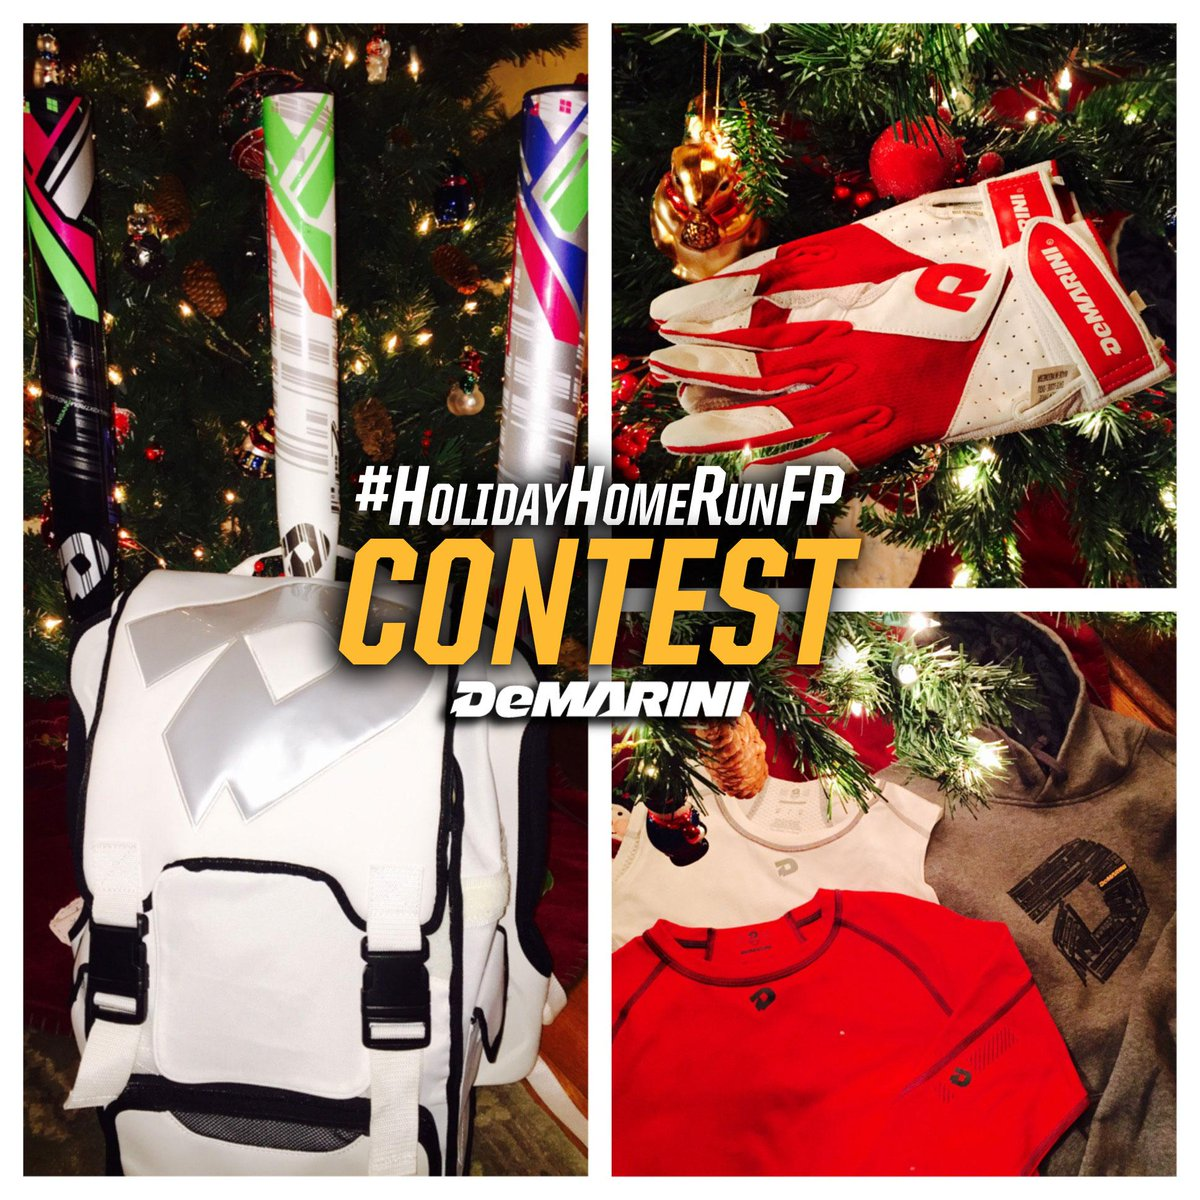 HOLIDAY HOME RUN CONTEST! All the gear you need for next year in a back pack. RT & follow to enter #HolidayHomeRunFP http://t.co/WKKNHuY2a4